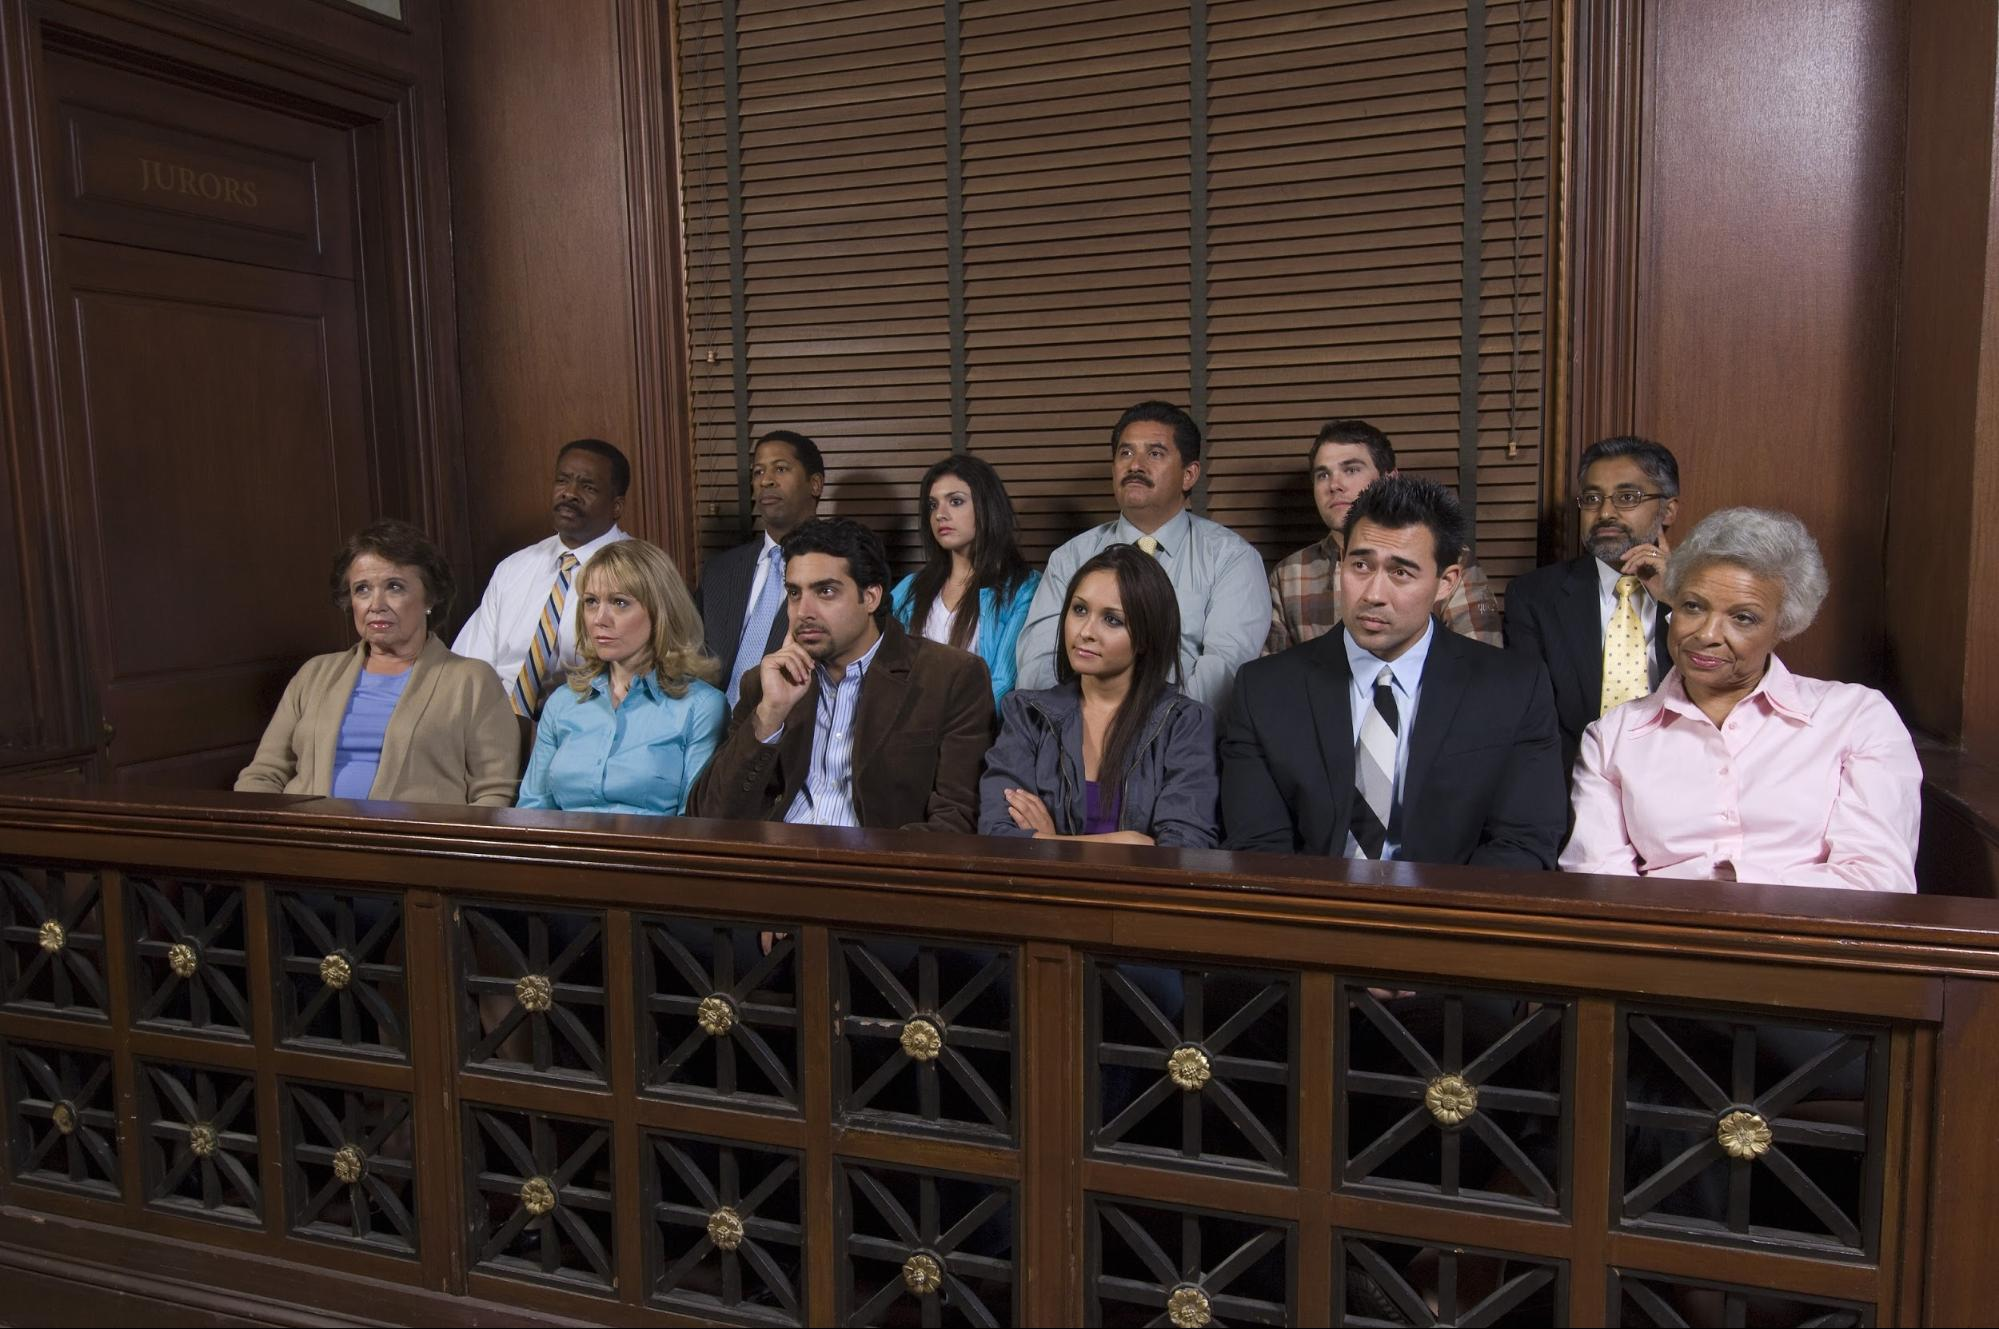 A panel of jurors inside a courtroom